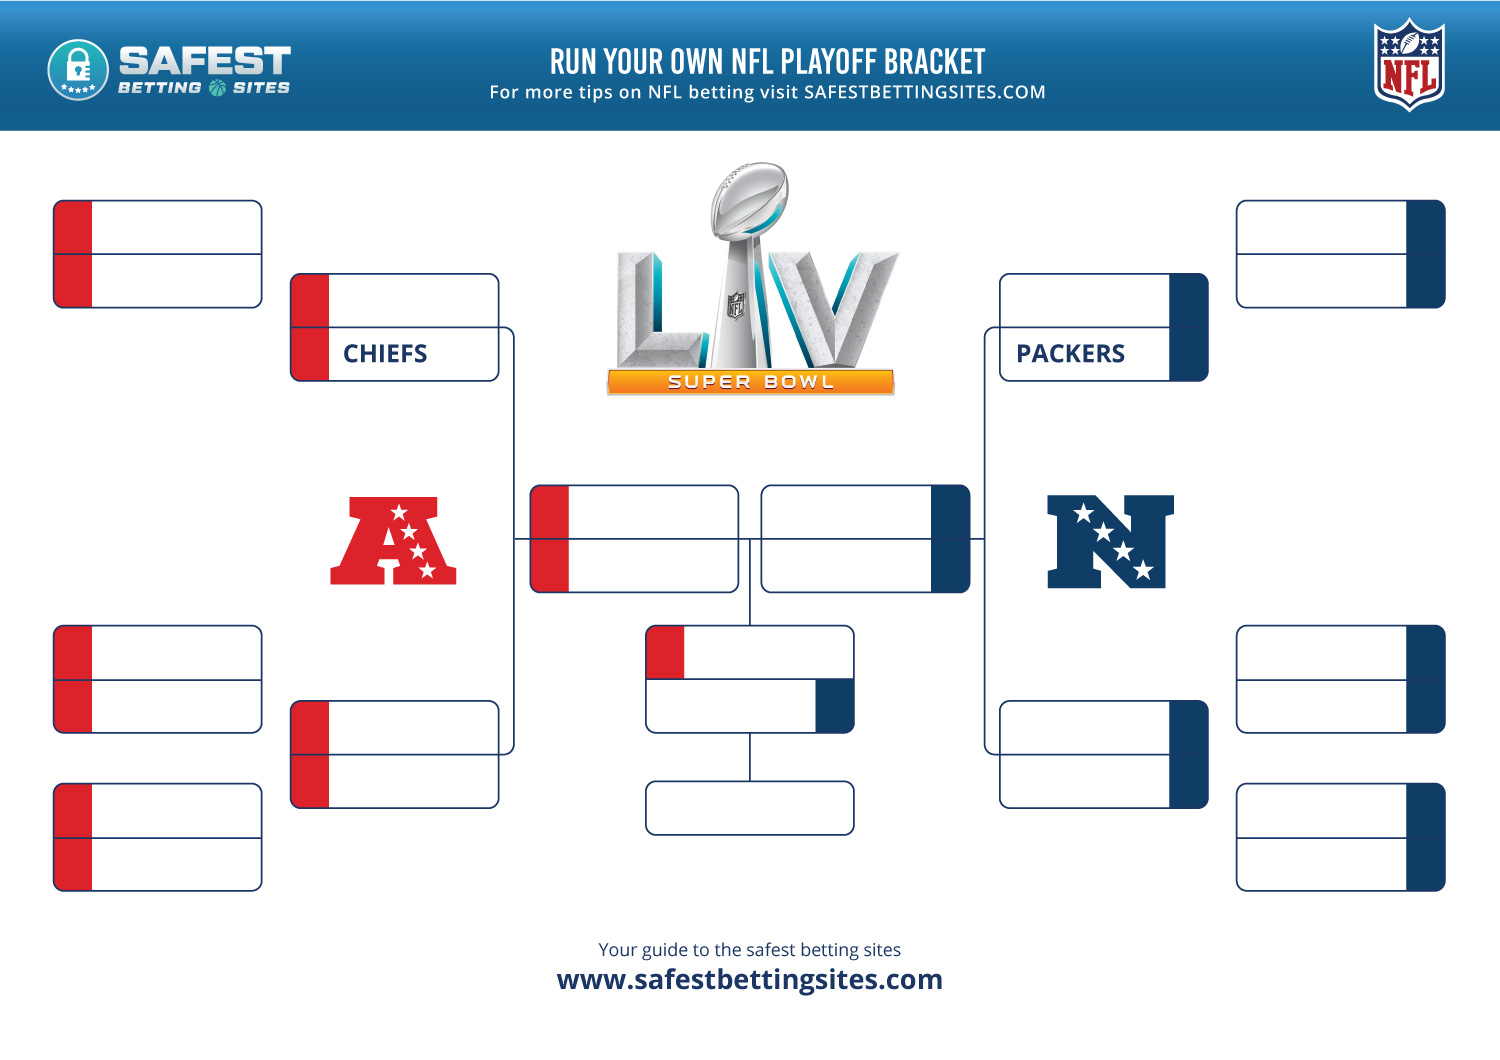 Printable Nfl Playoff Bracket - Betting Contest [Updated 2021! ]